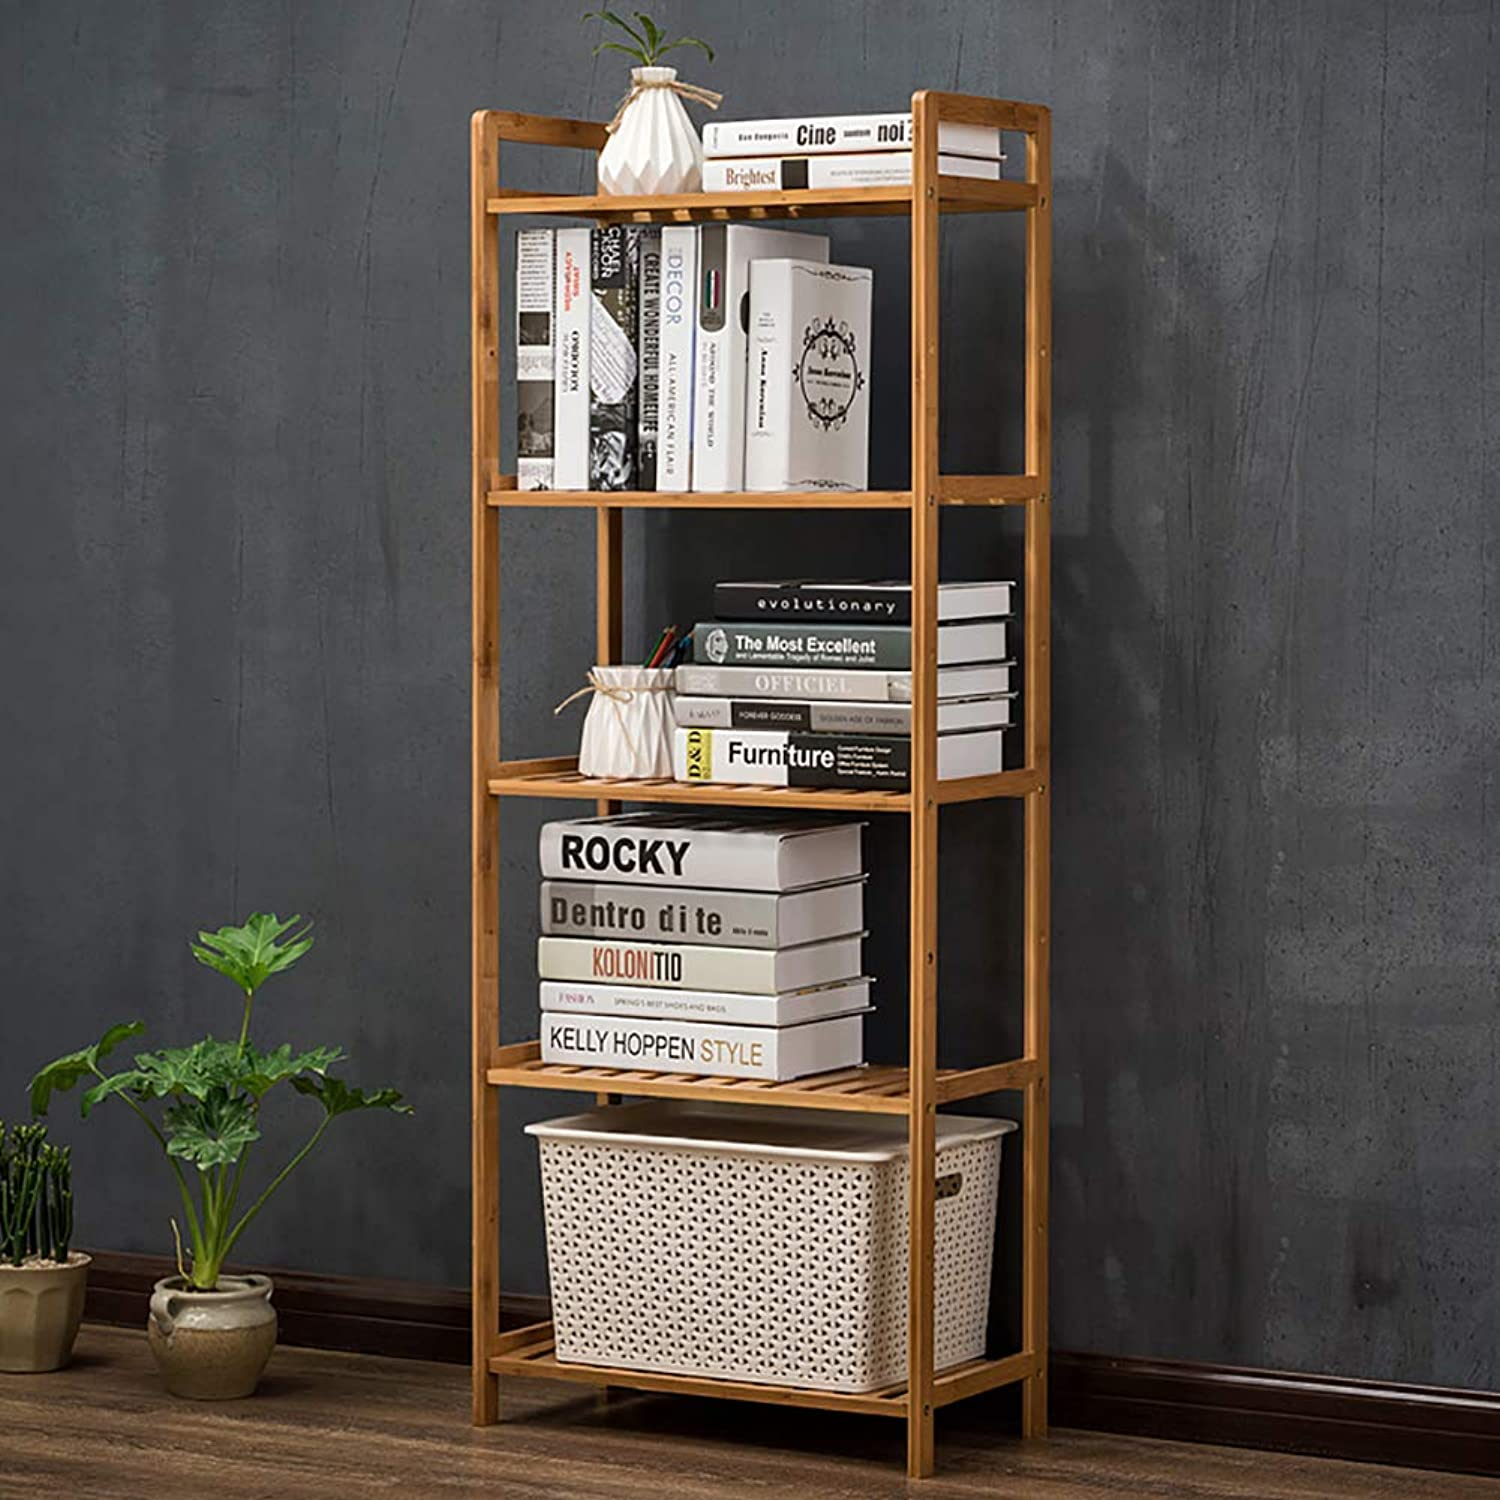 Bamboo 5-Tier Bookshelf, Shelf Display Rack Open Shelf Narrow Library Display Stand Tall Multipurpose for Home or Office -H 50x25x128cm(20x10x50inch)